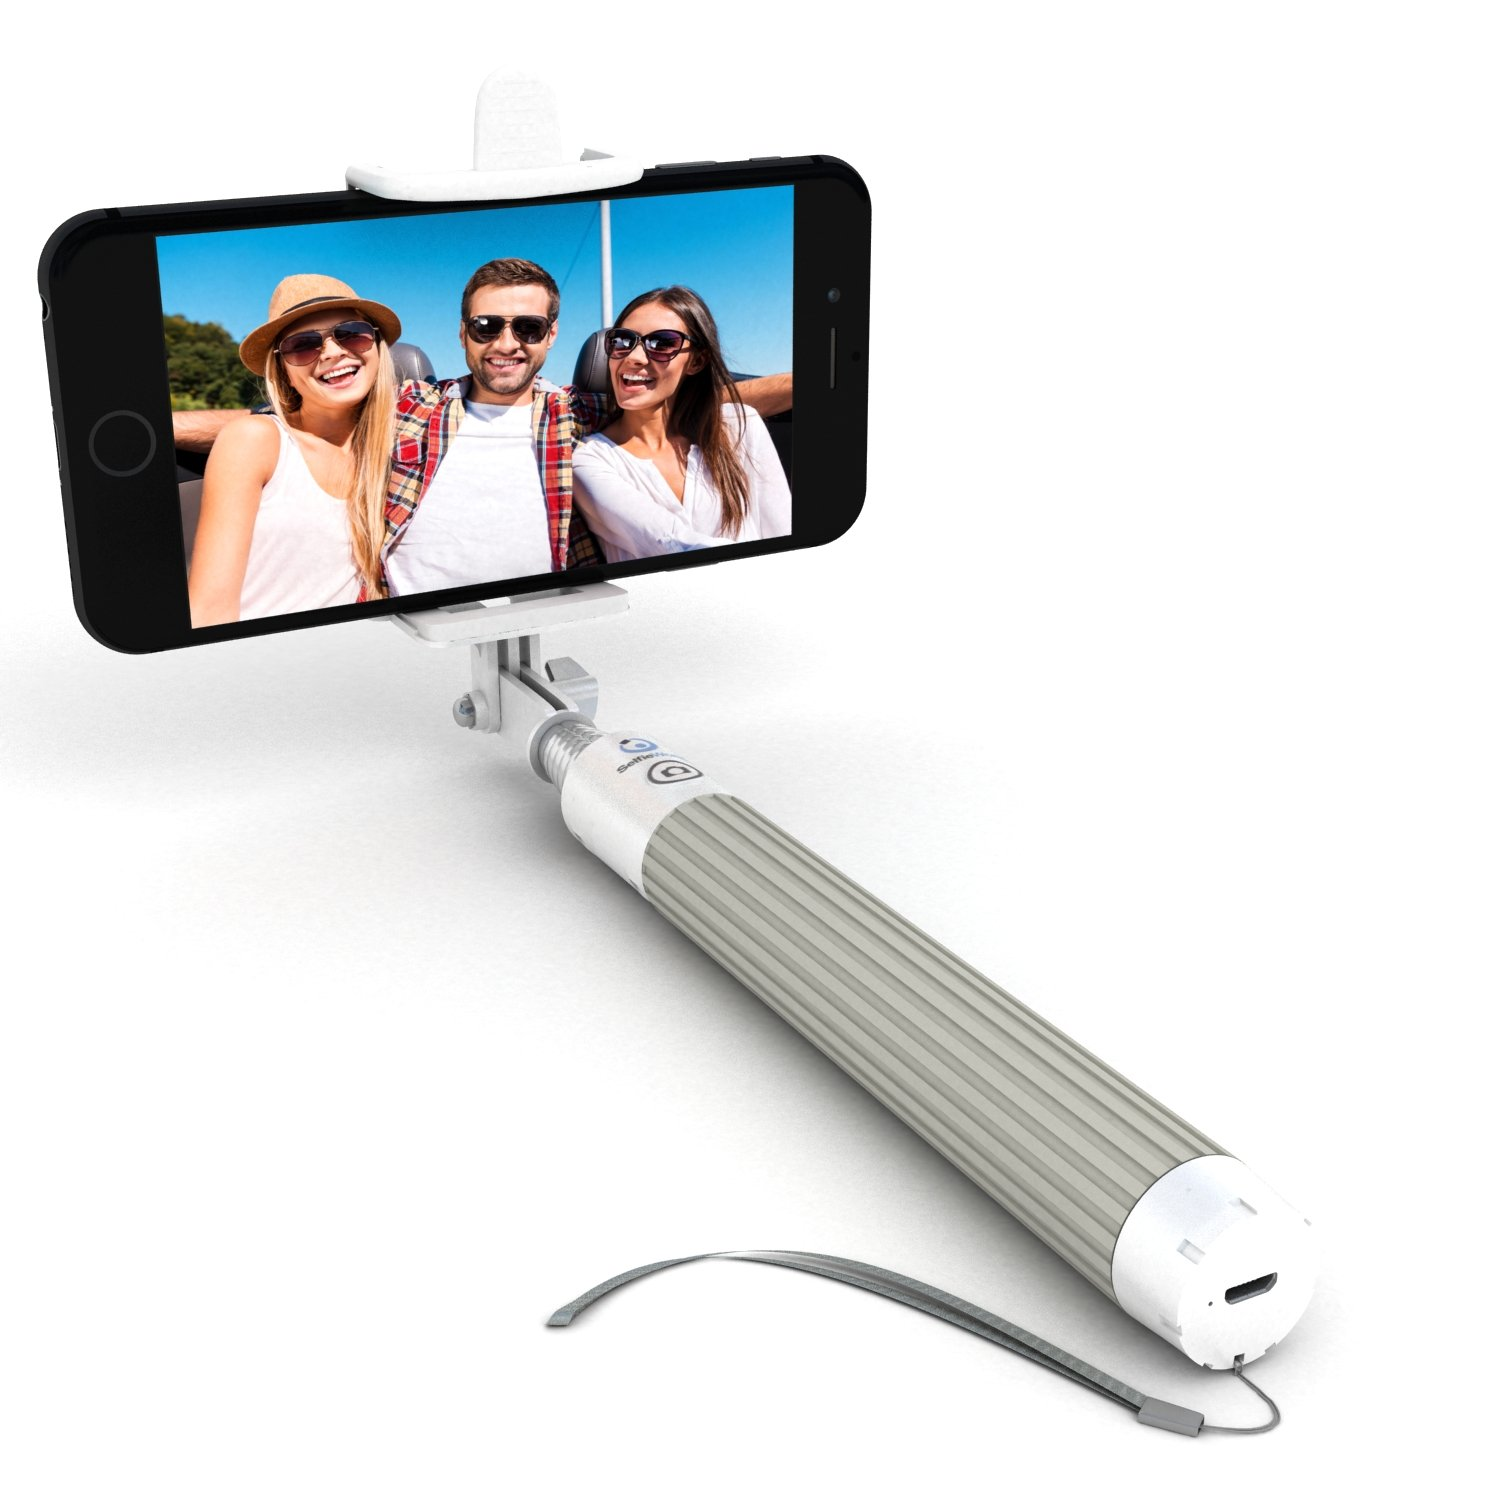 Premium 5-in-1 Bluetooth Selfie Stick for iPhone XR XS X 8 7 6 5, Samsung Galaxy S10 S9 S8 S7 S6 S5 & Most Androids - Takes Perfect HD Photos in Seconds - No Apps, No Downloads, No Hassle by Selfie World